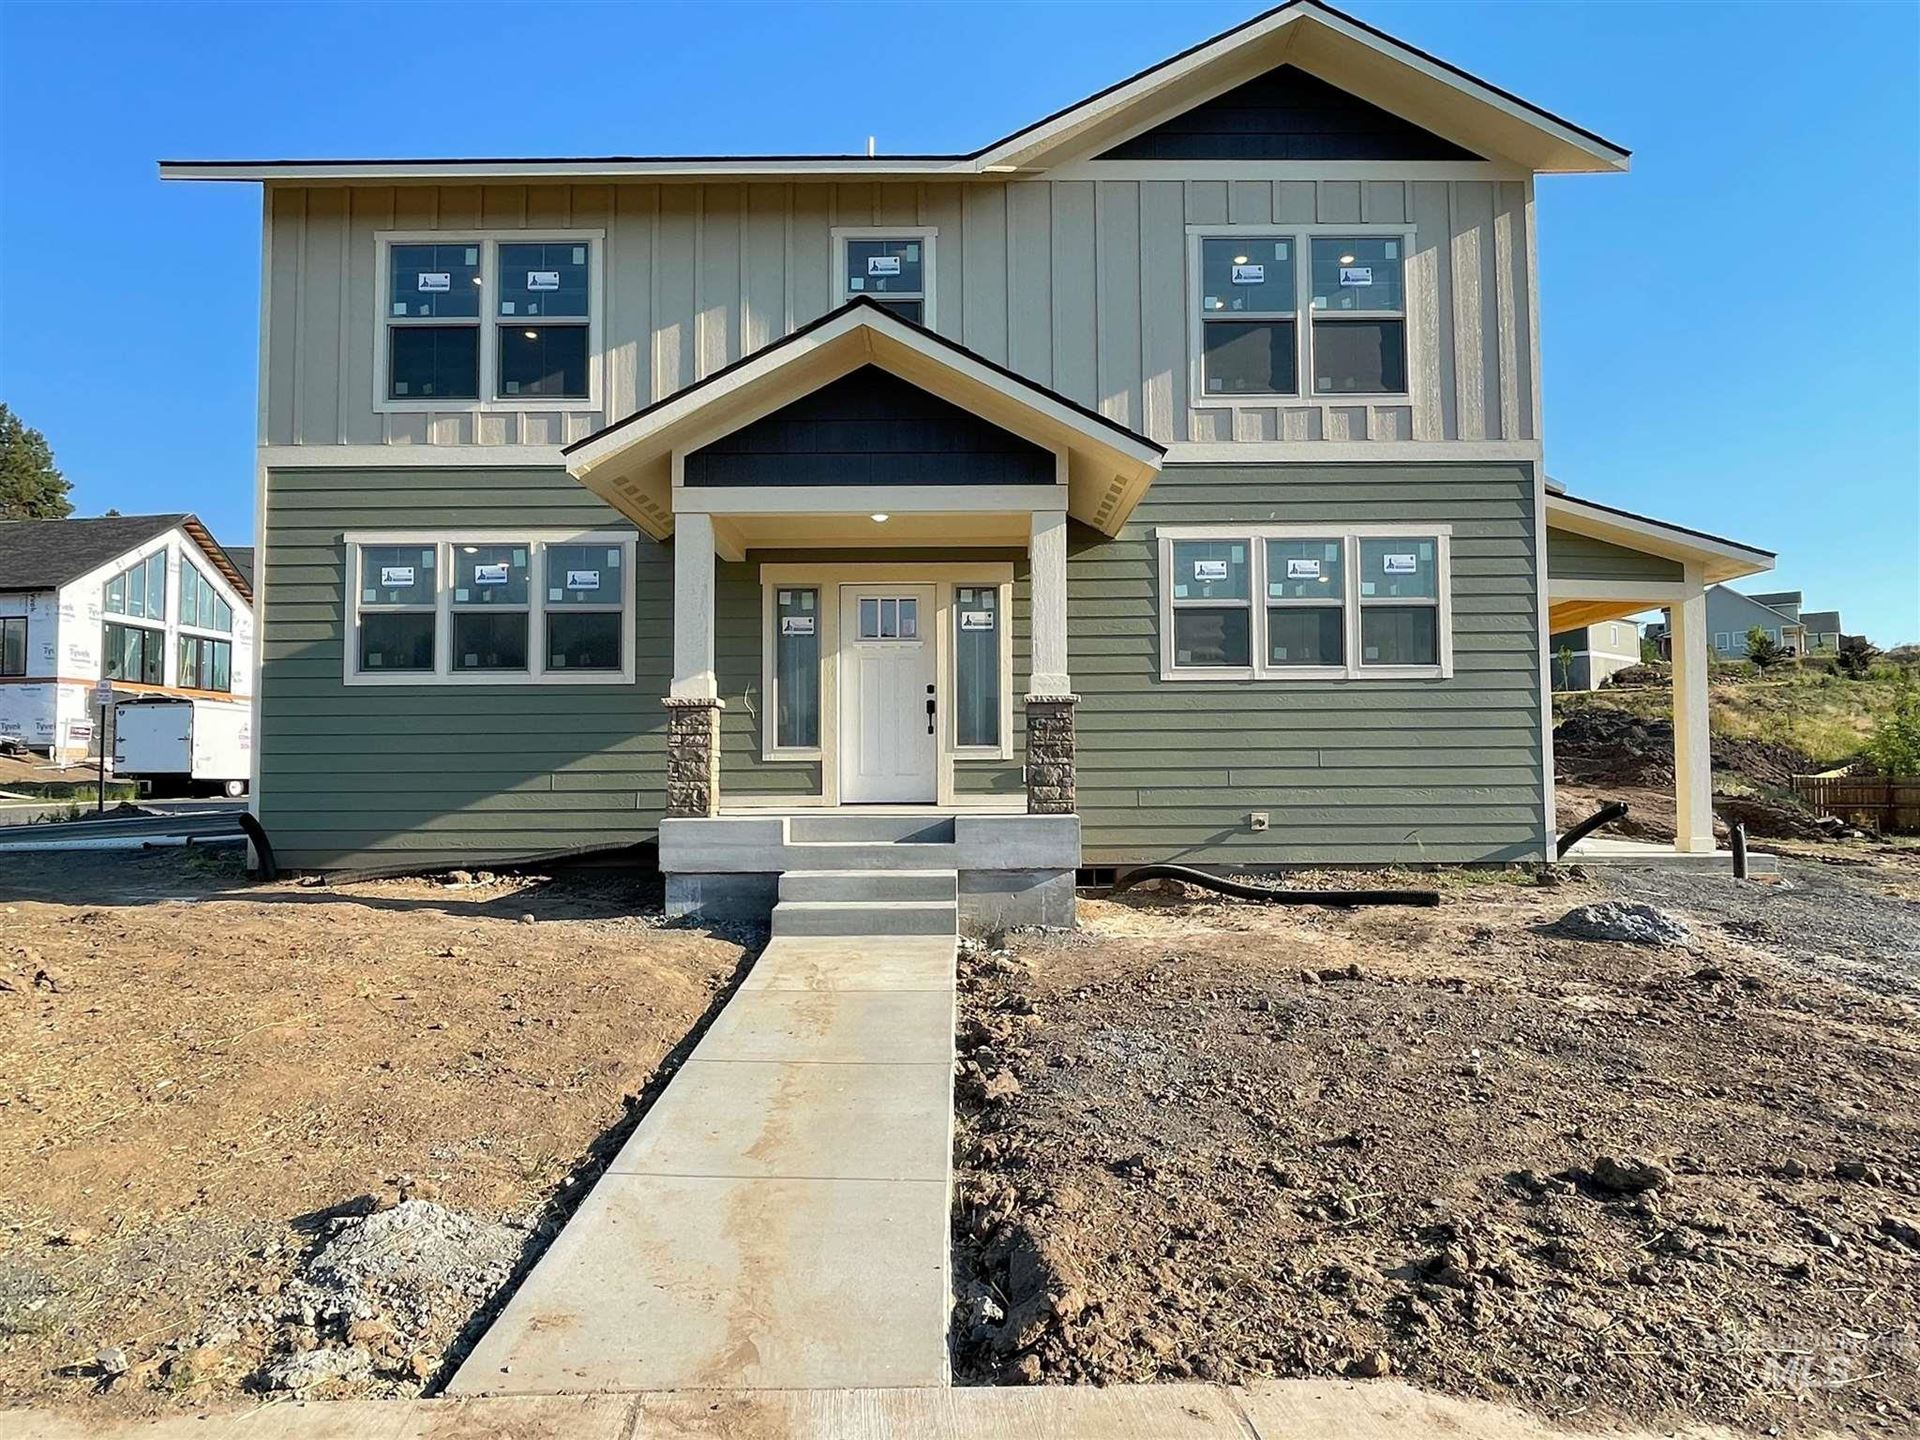 Photo of 1103 Chelsea Ct, Moscow, ID 83843 (MLS # 98810370)